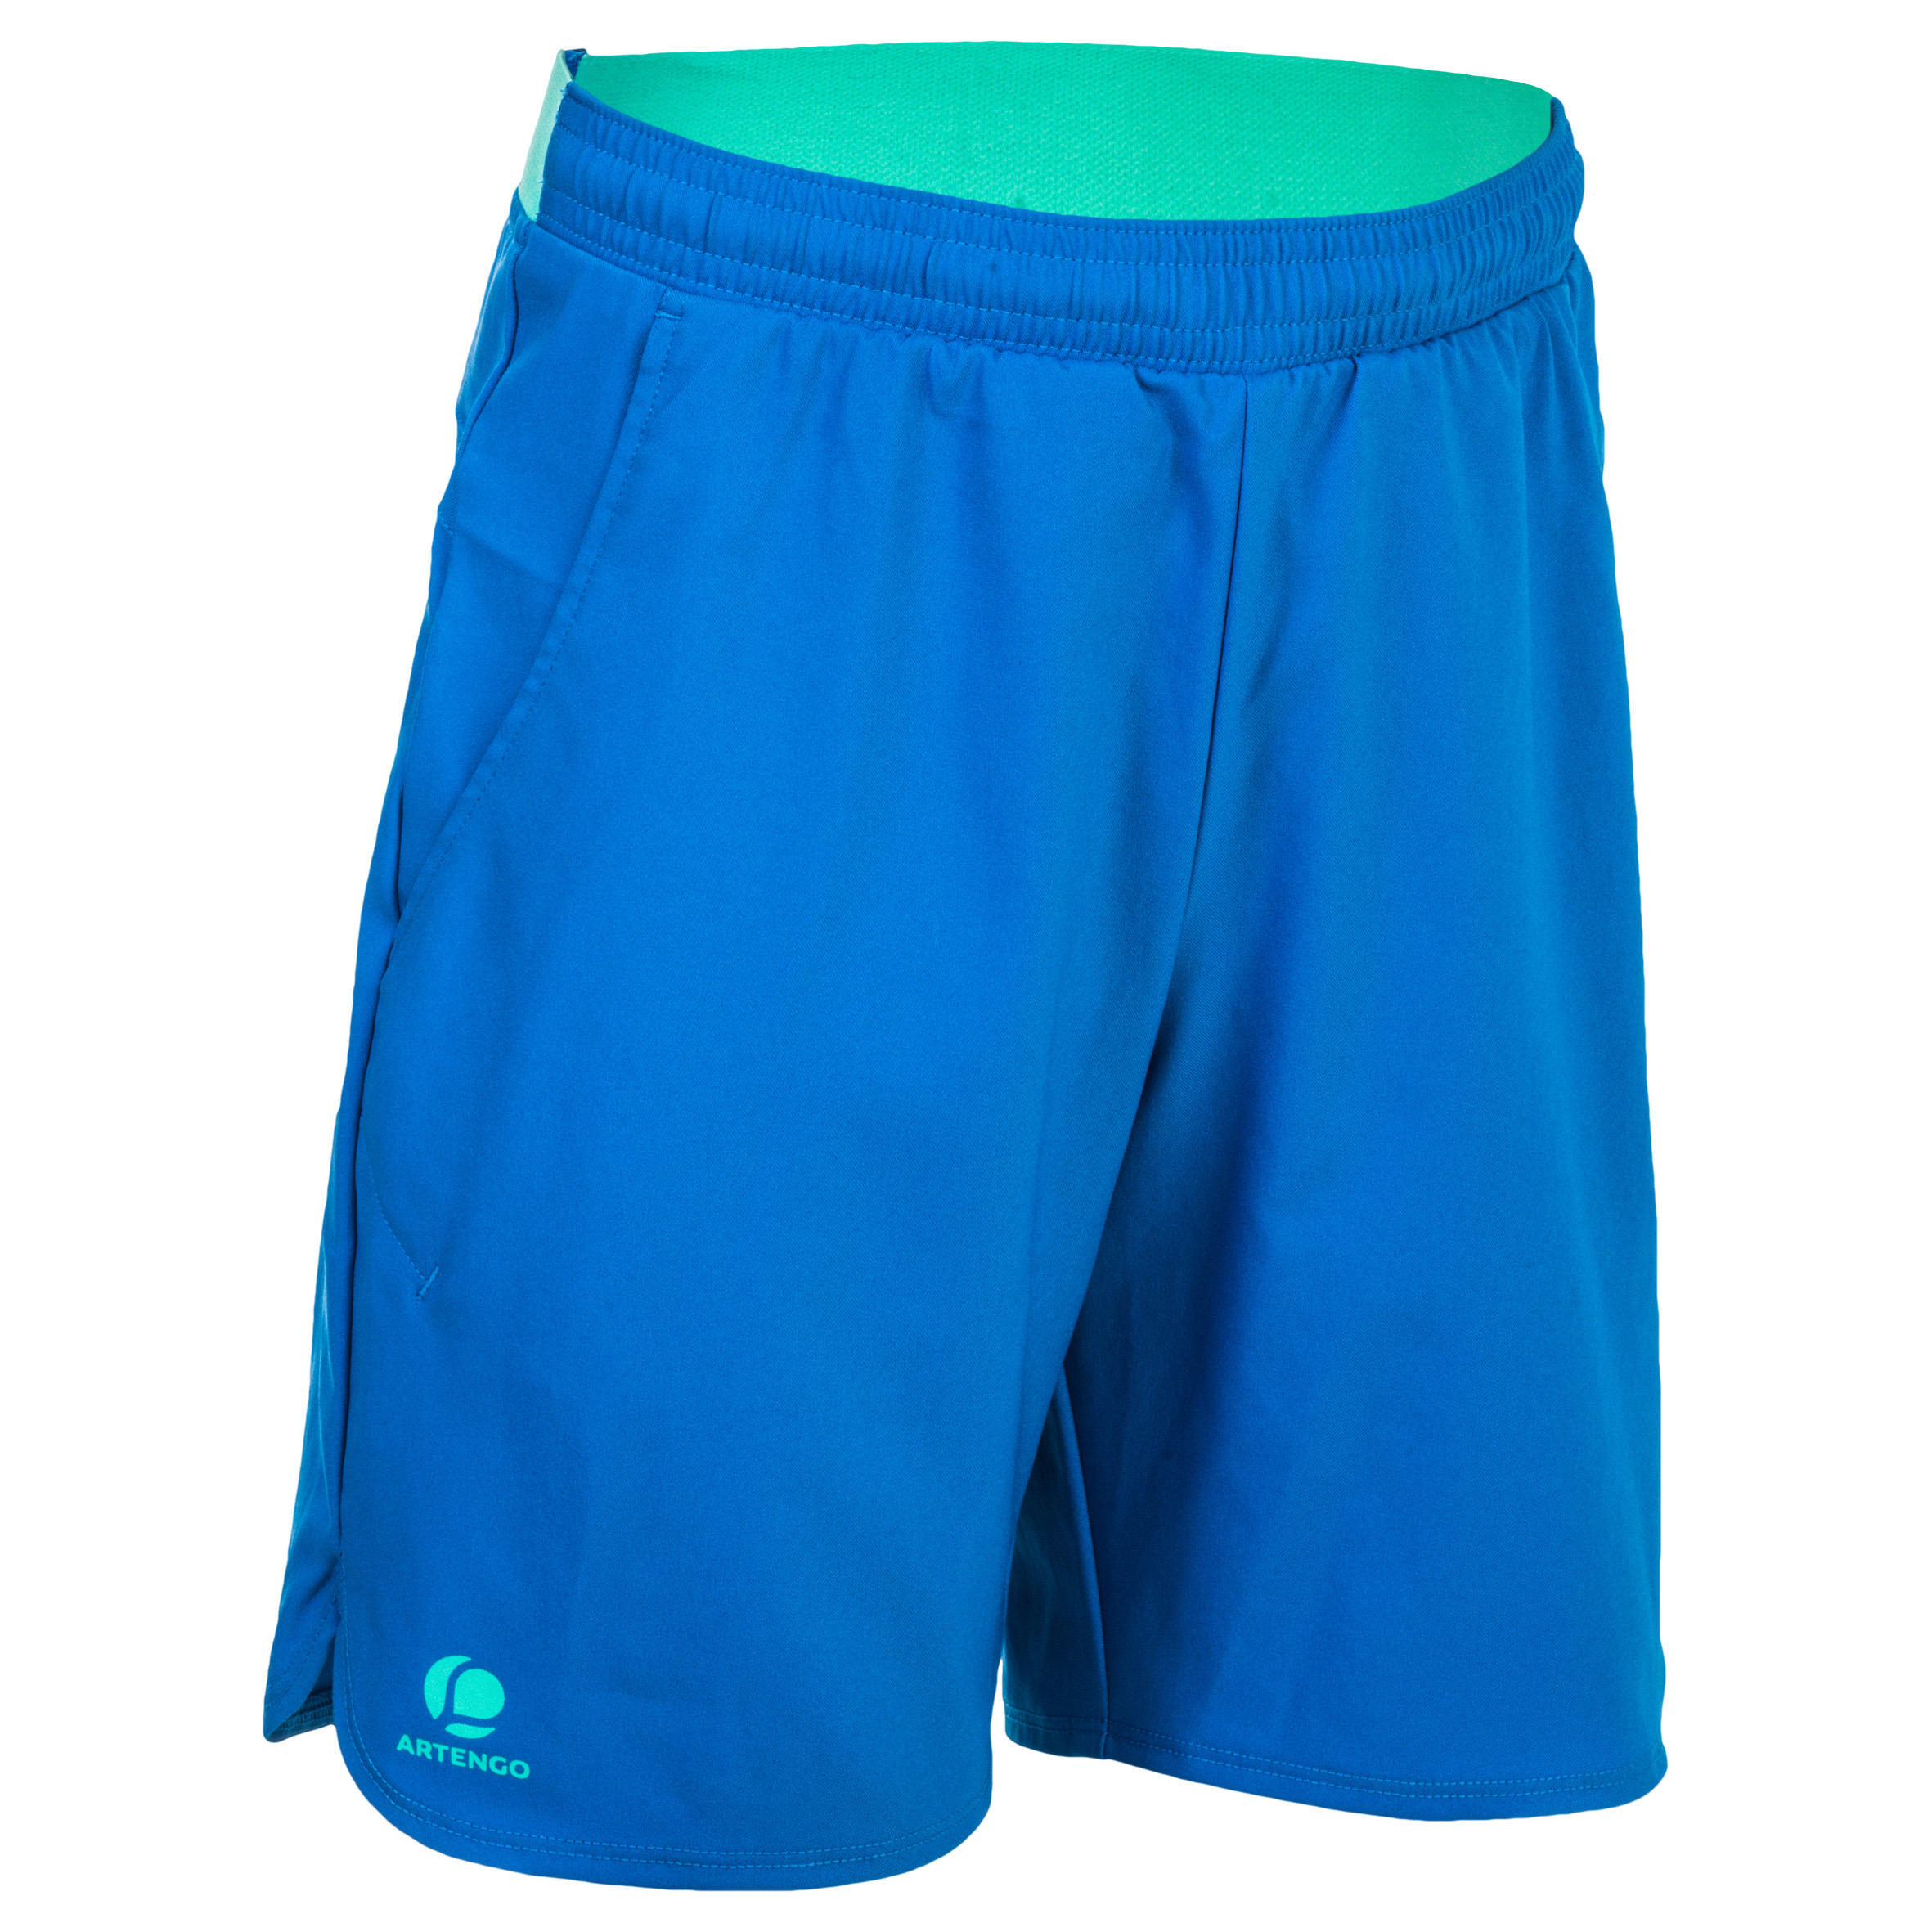 500 Boys Shorts - Blue/Green